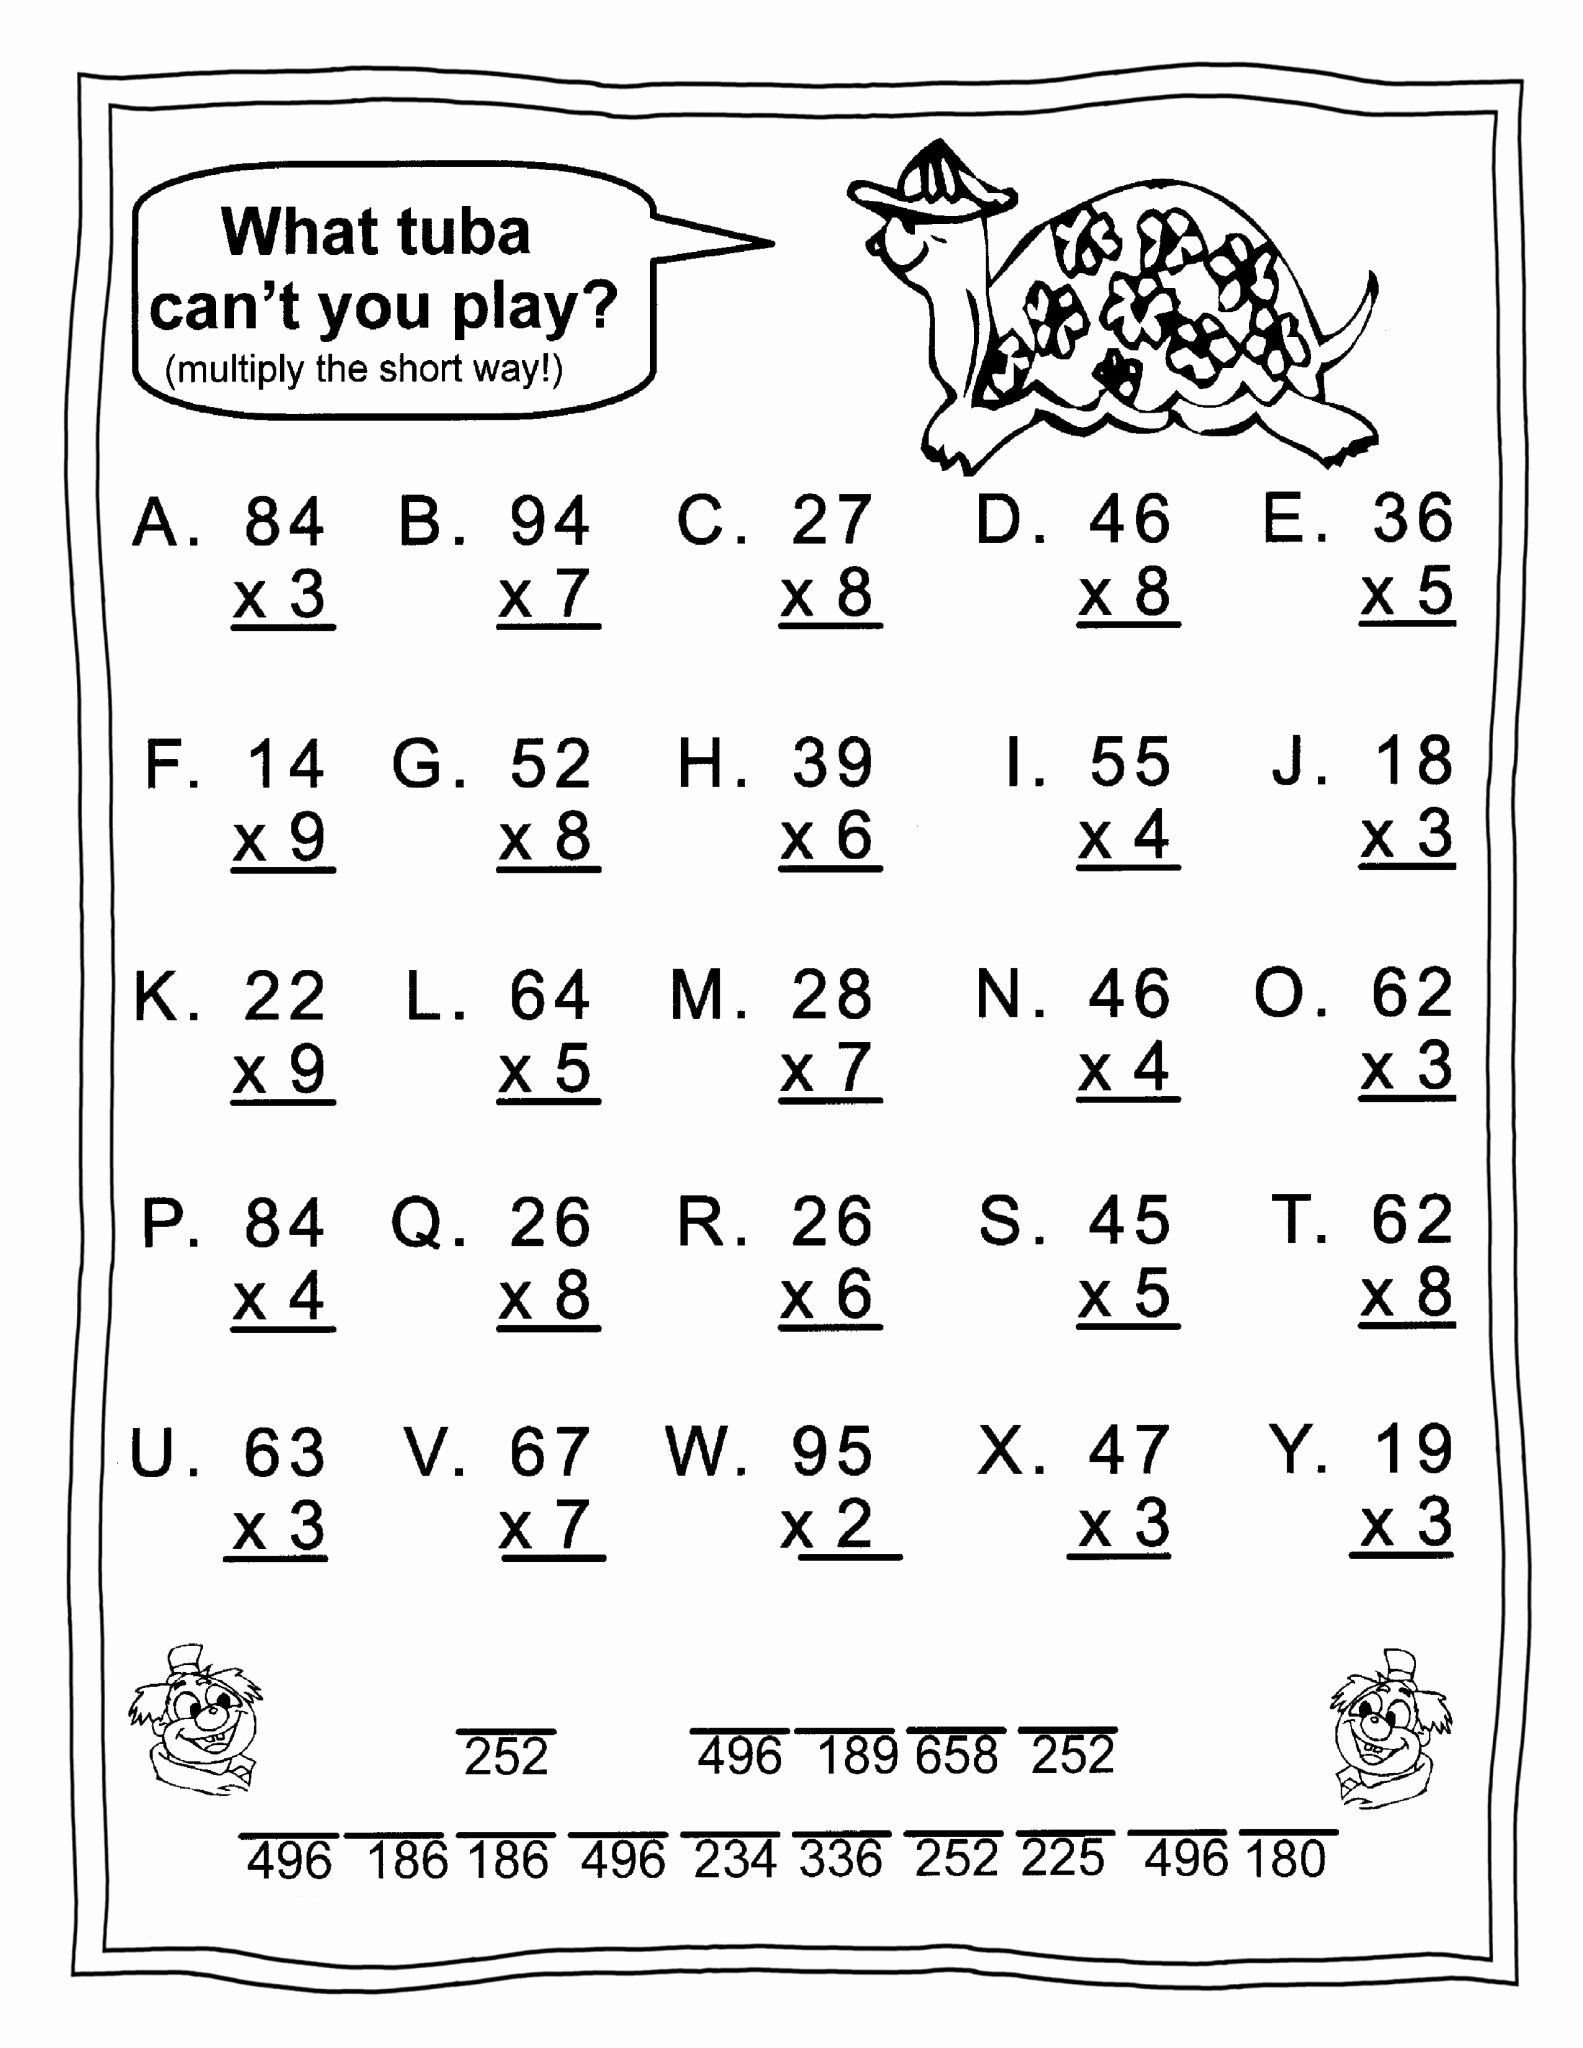 Free Multiplication Worksheets 3rd Grade New Worksheets 3rd Grade Math Worksheets Best Coloring for